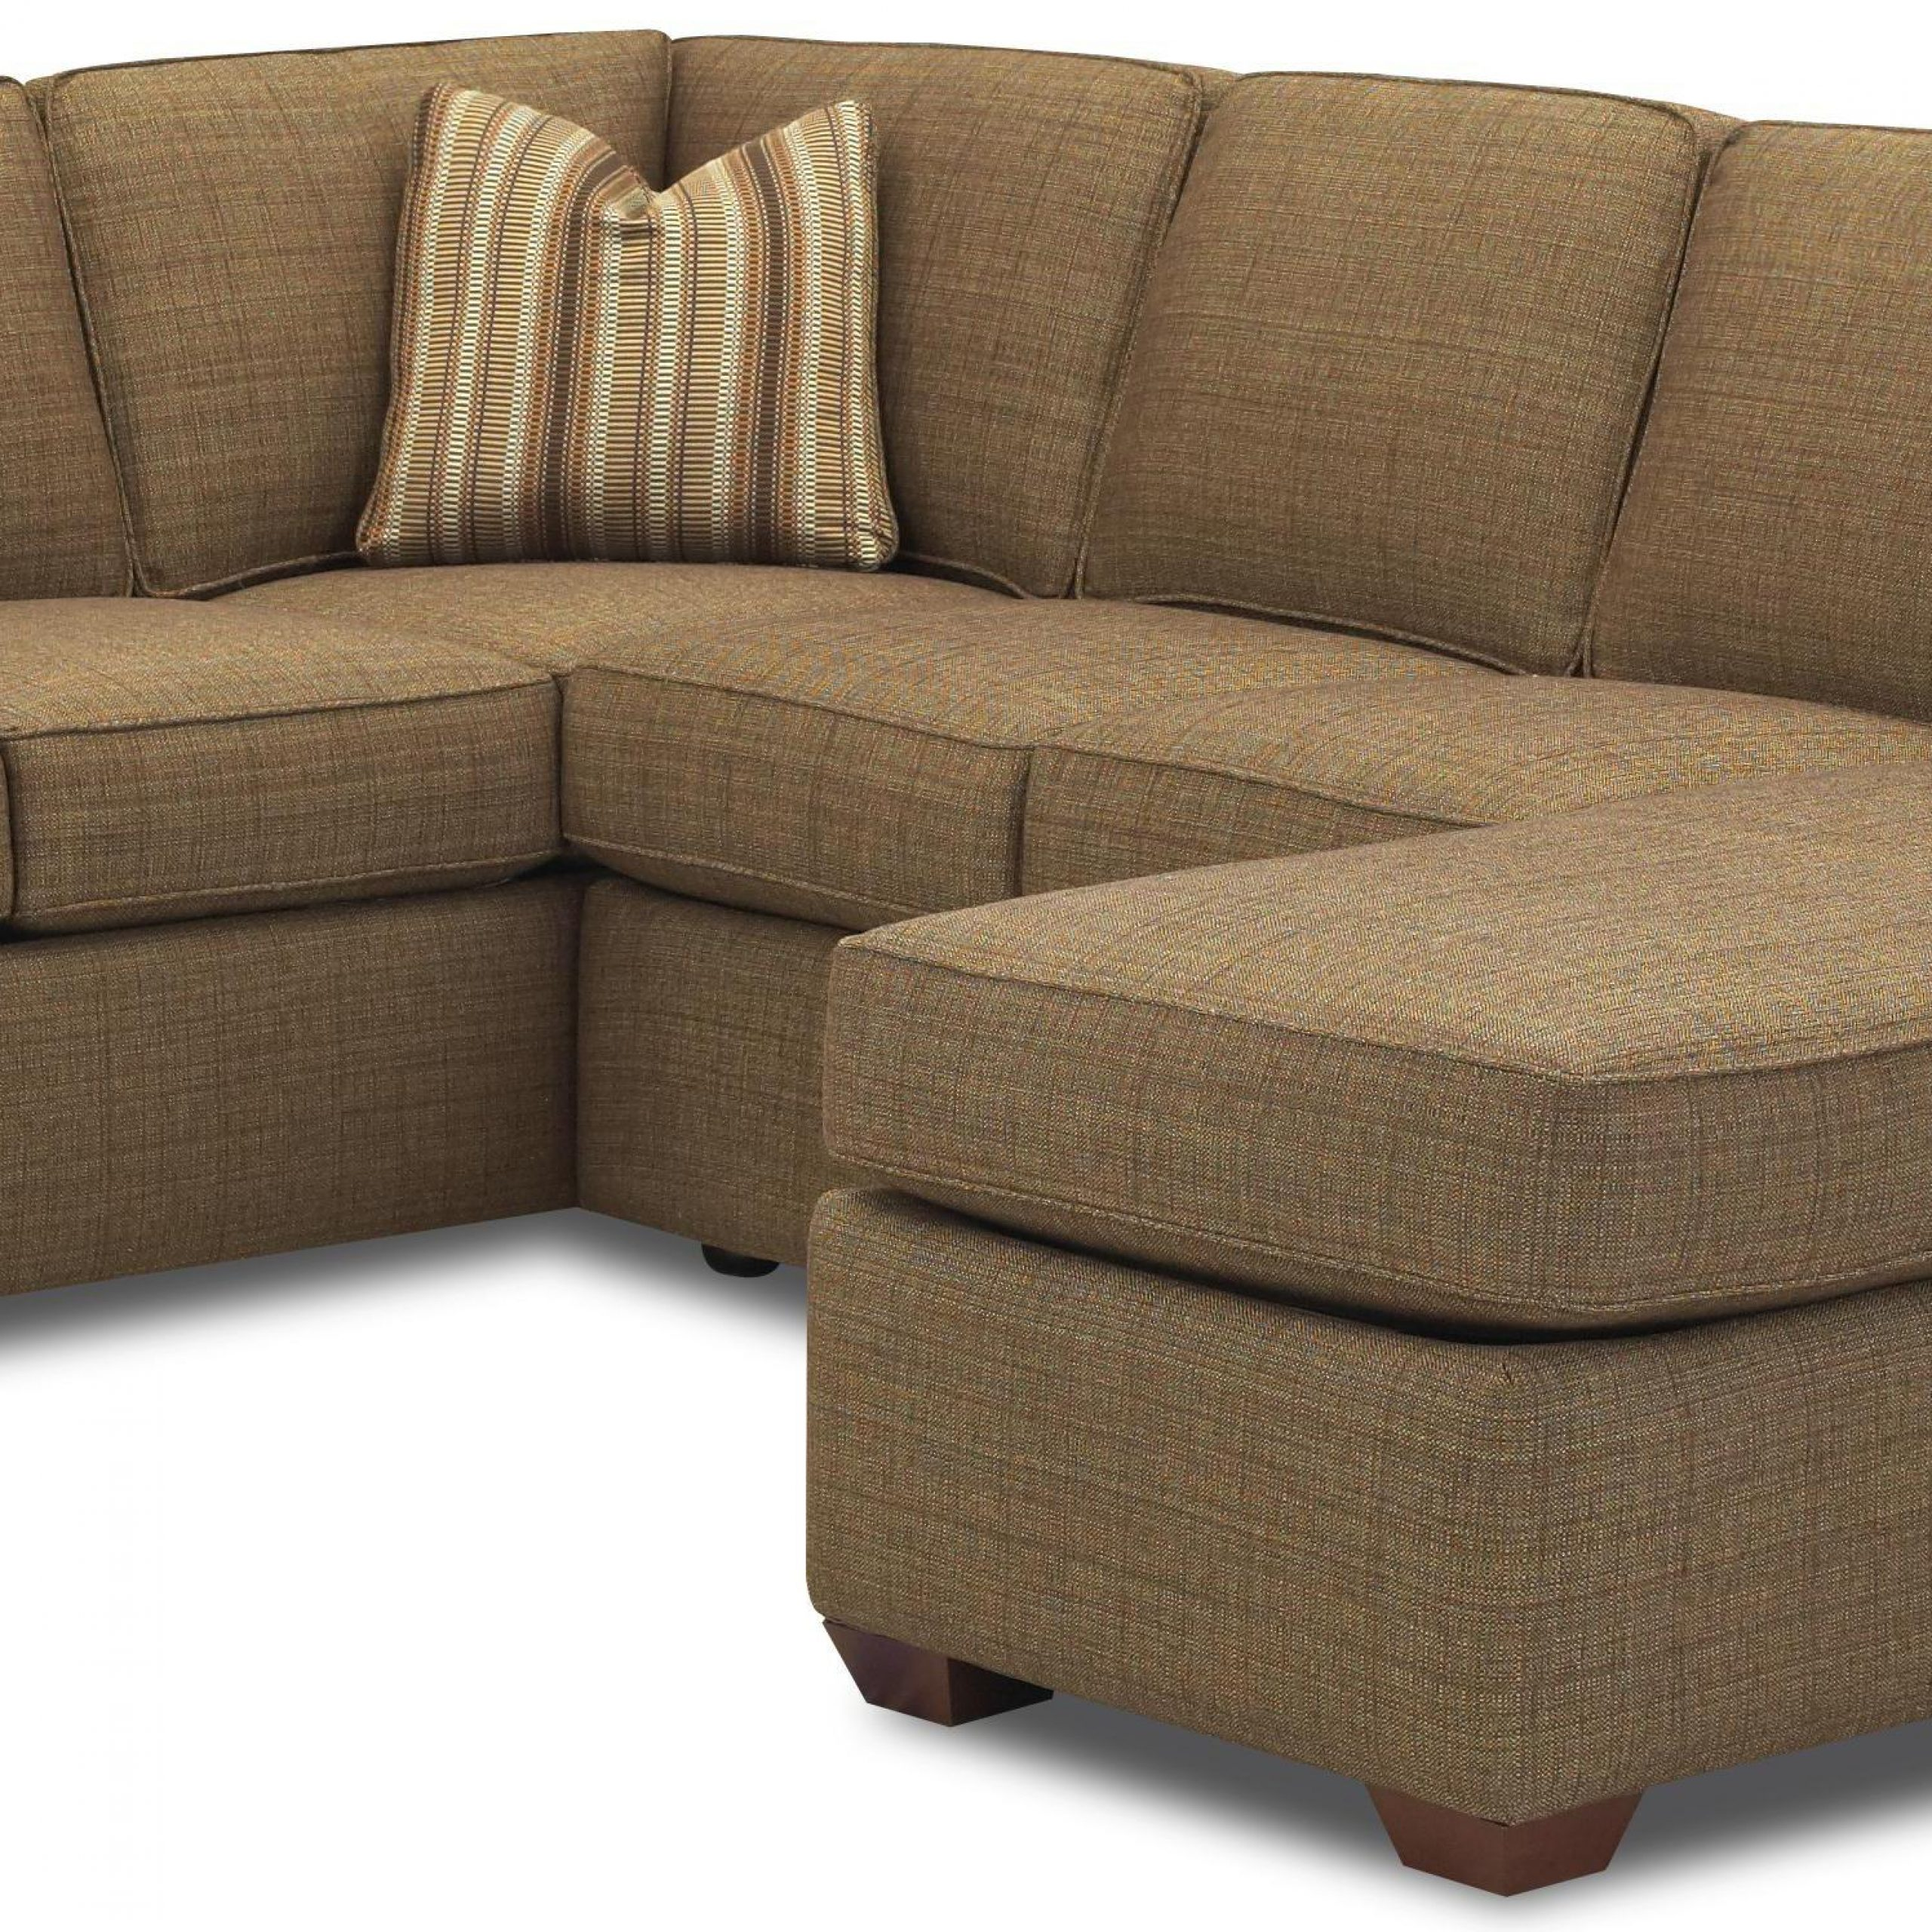 Sectional Sofa Group With Right Chaise Loungeklaussner In Copenhagen Reclining Sectional Sofas With Right Storage Chaise (View 11 of 15)